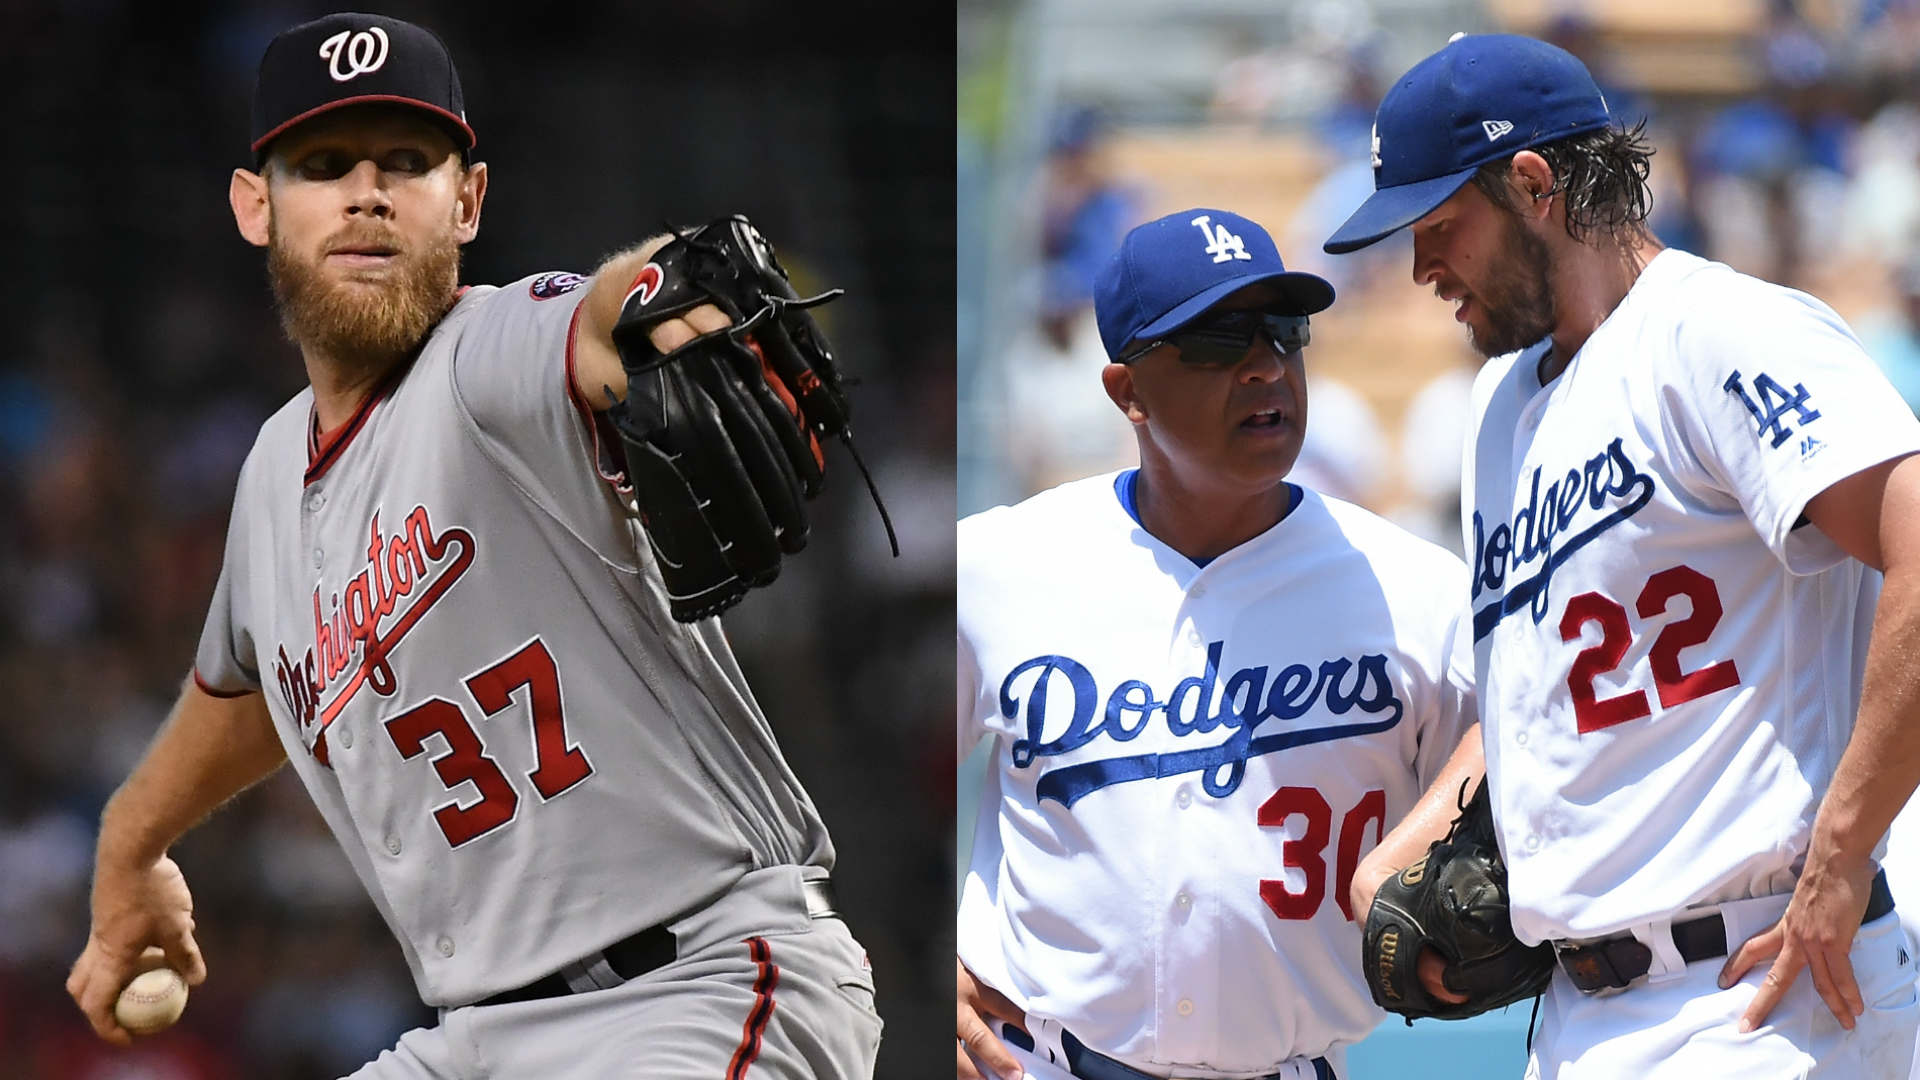 Dodgers Roster Moves: Kershaw & McCarthy on DL, Ryu Reinstated